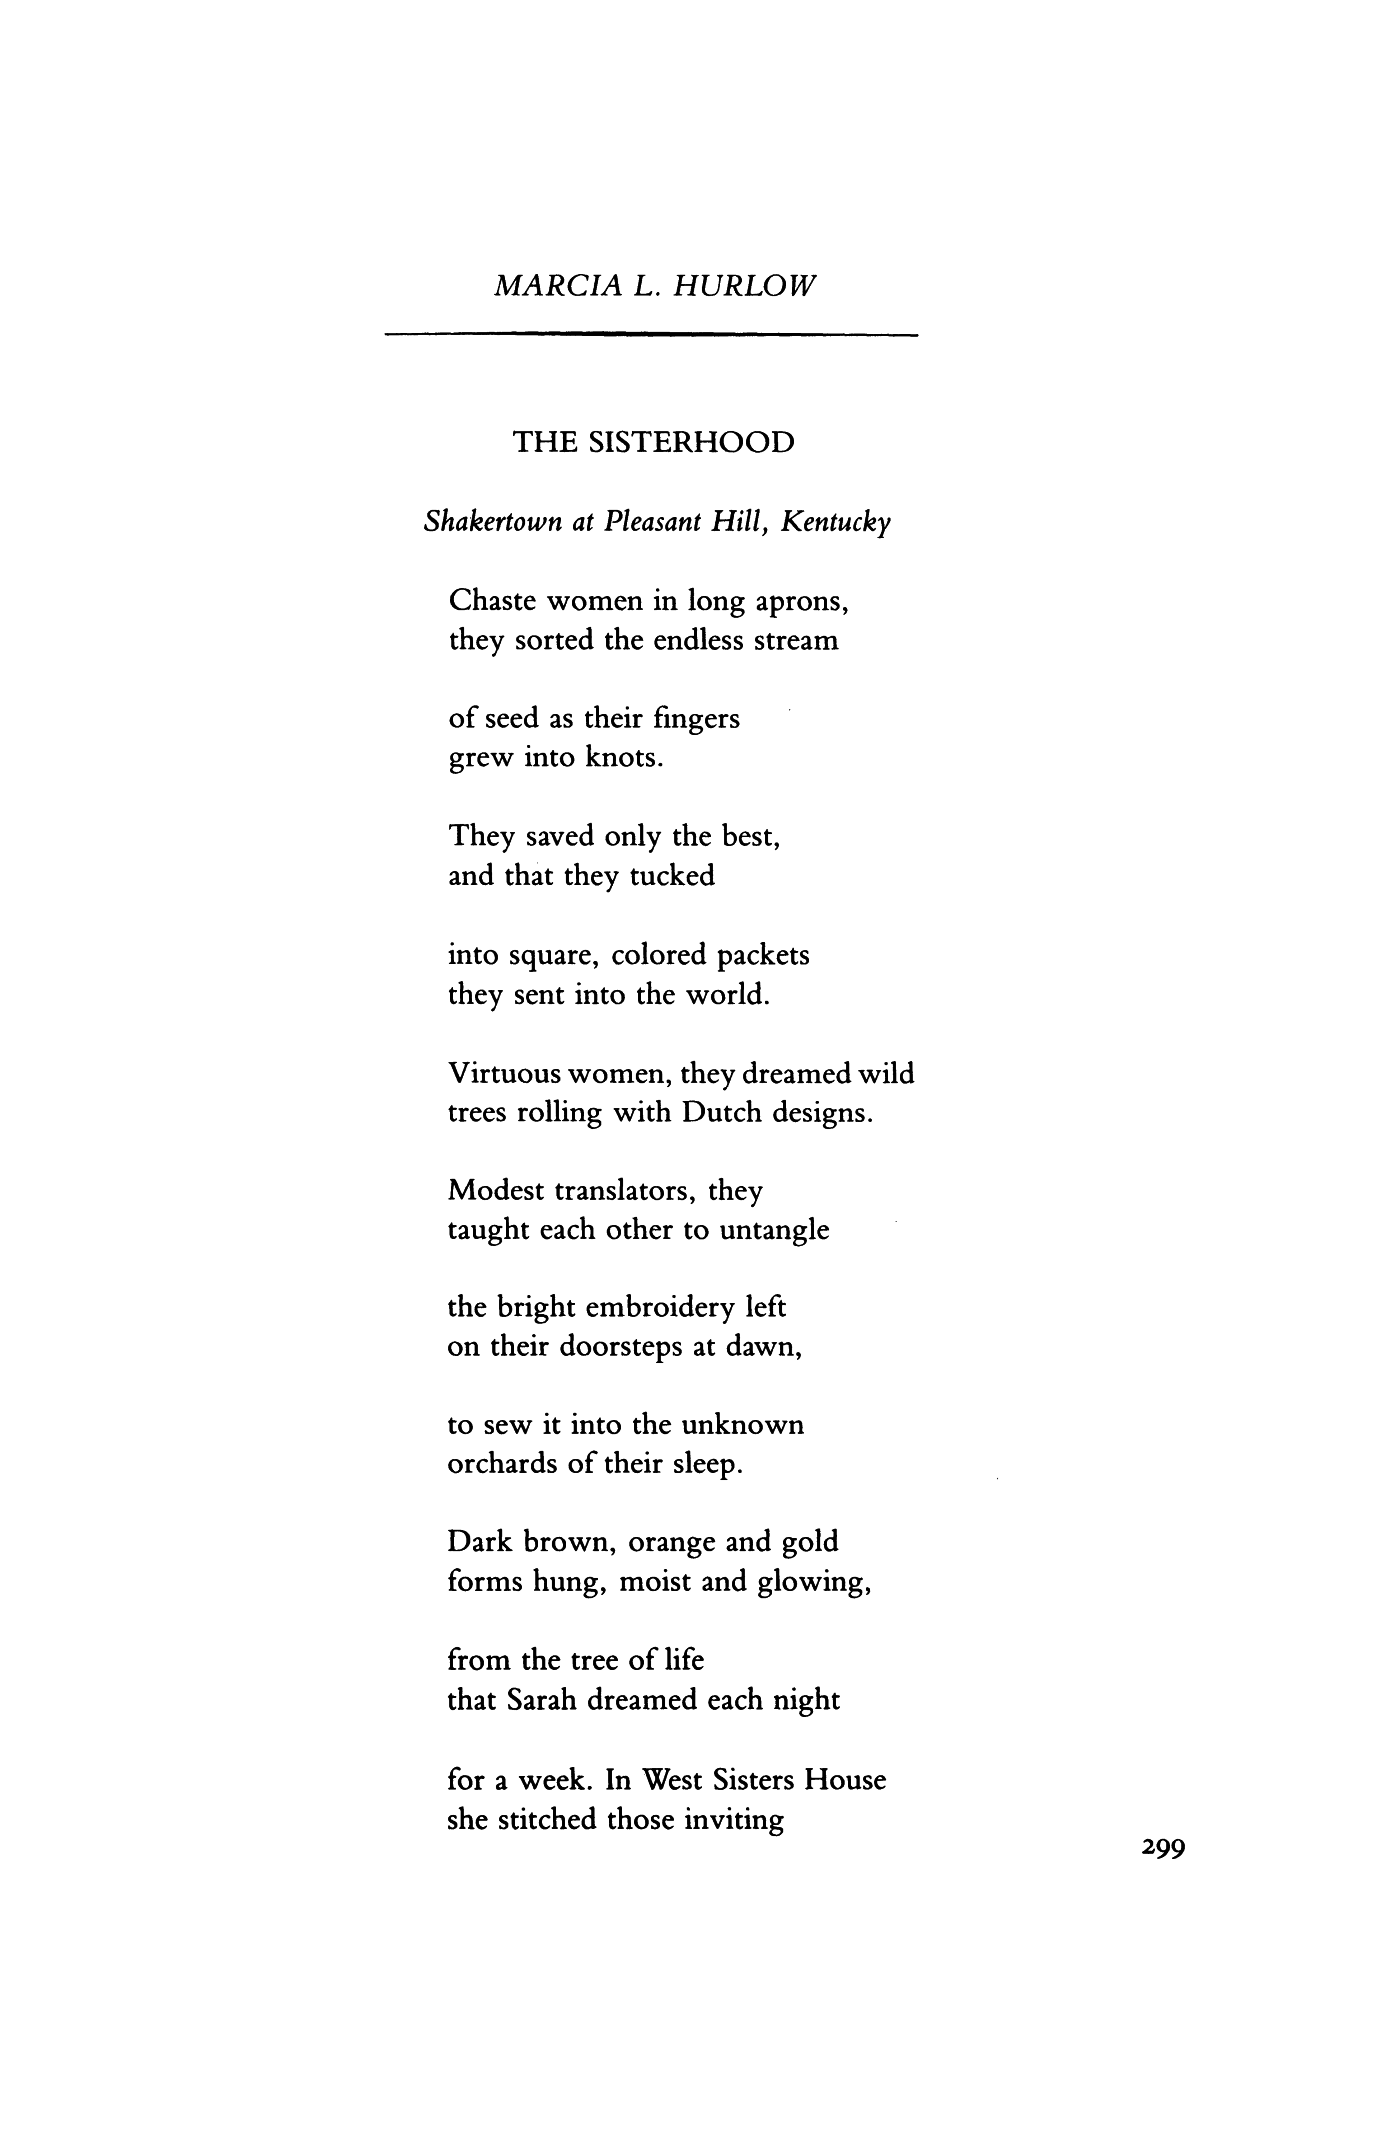 The Bean Eaters By Gwendolyn Brooks